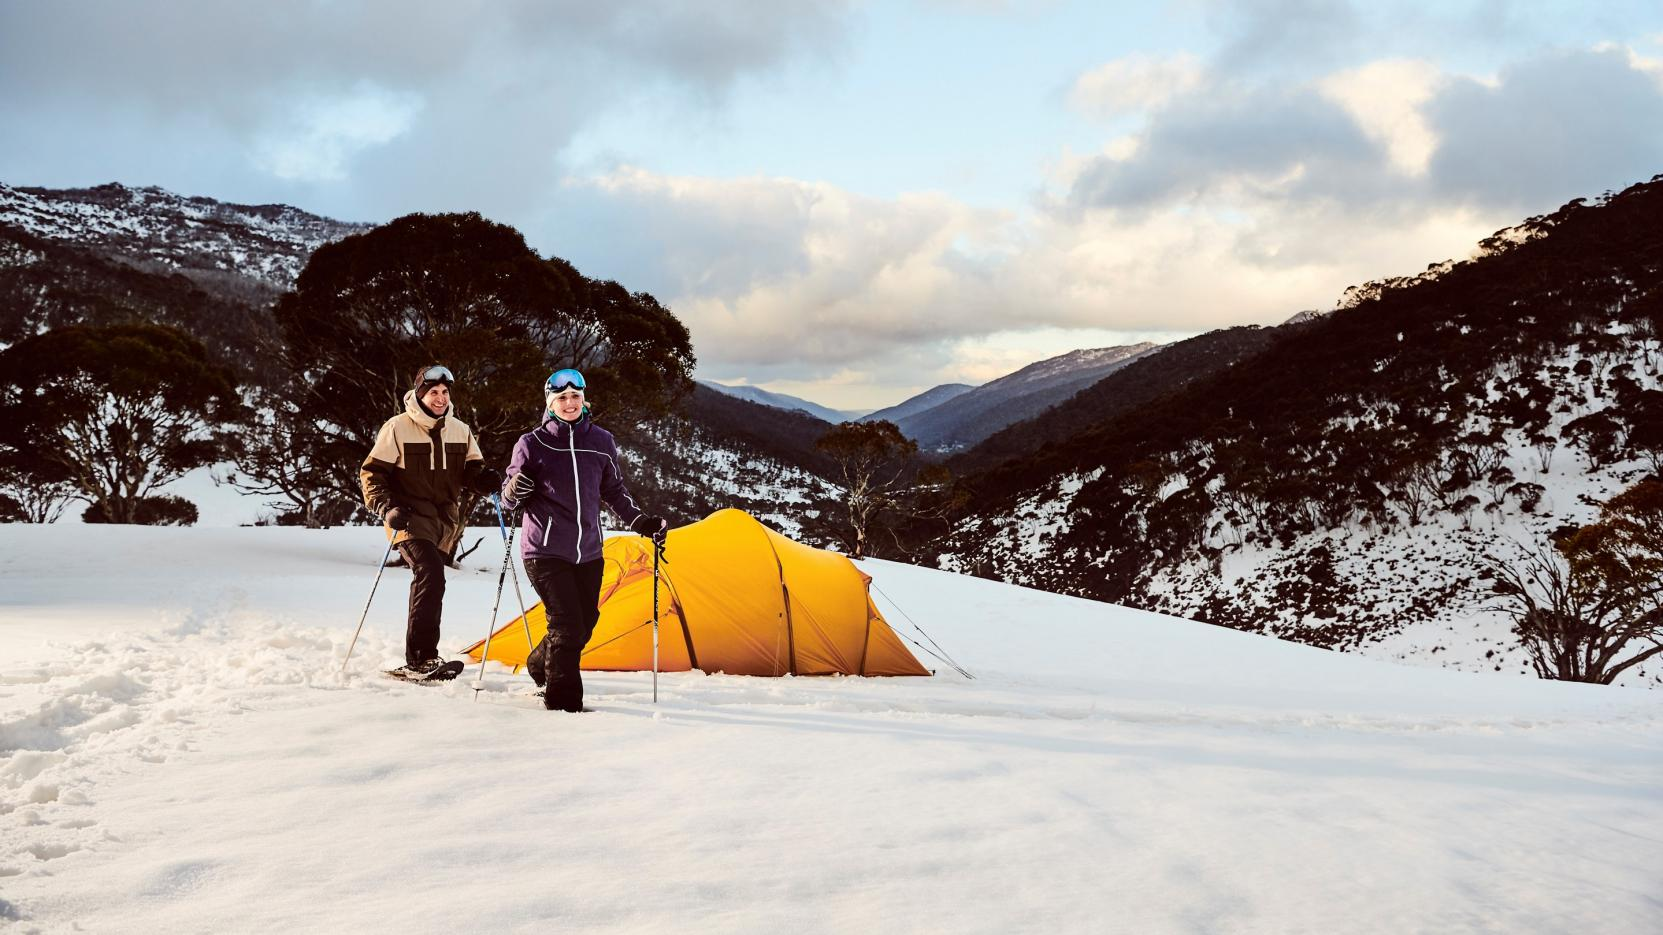 Snowshoeing at Thredbo, Snowy Mountains, NSW © Destination NSW